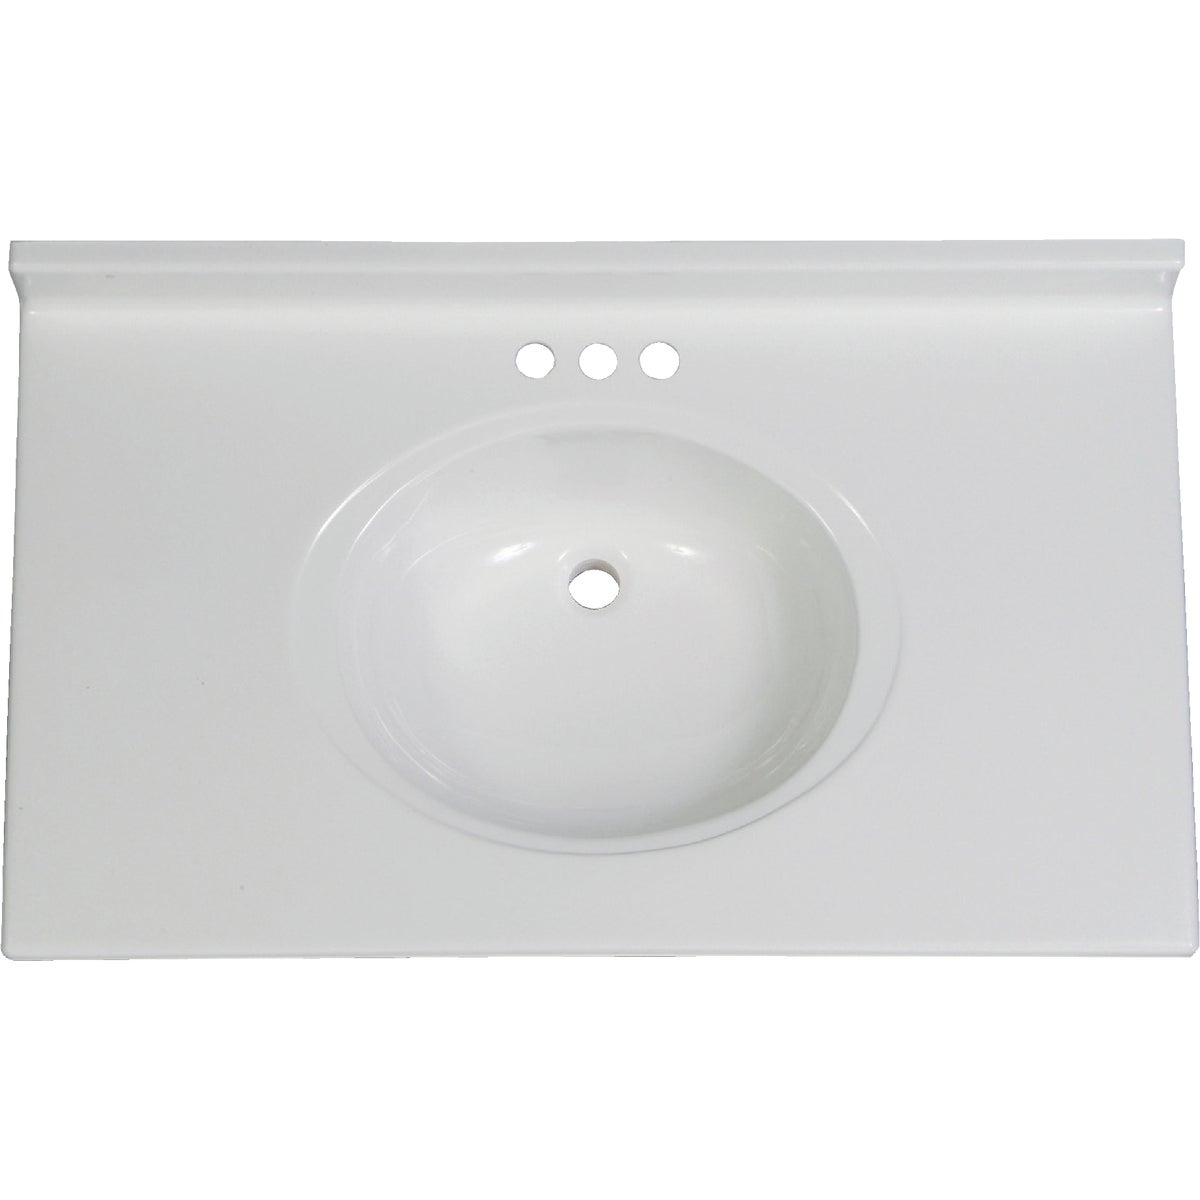 37X22 WHT VANITY TOP - VC3722SPW by Imperial Marble Corp